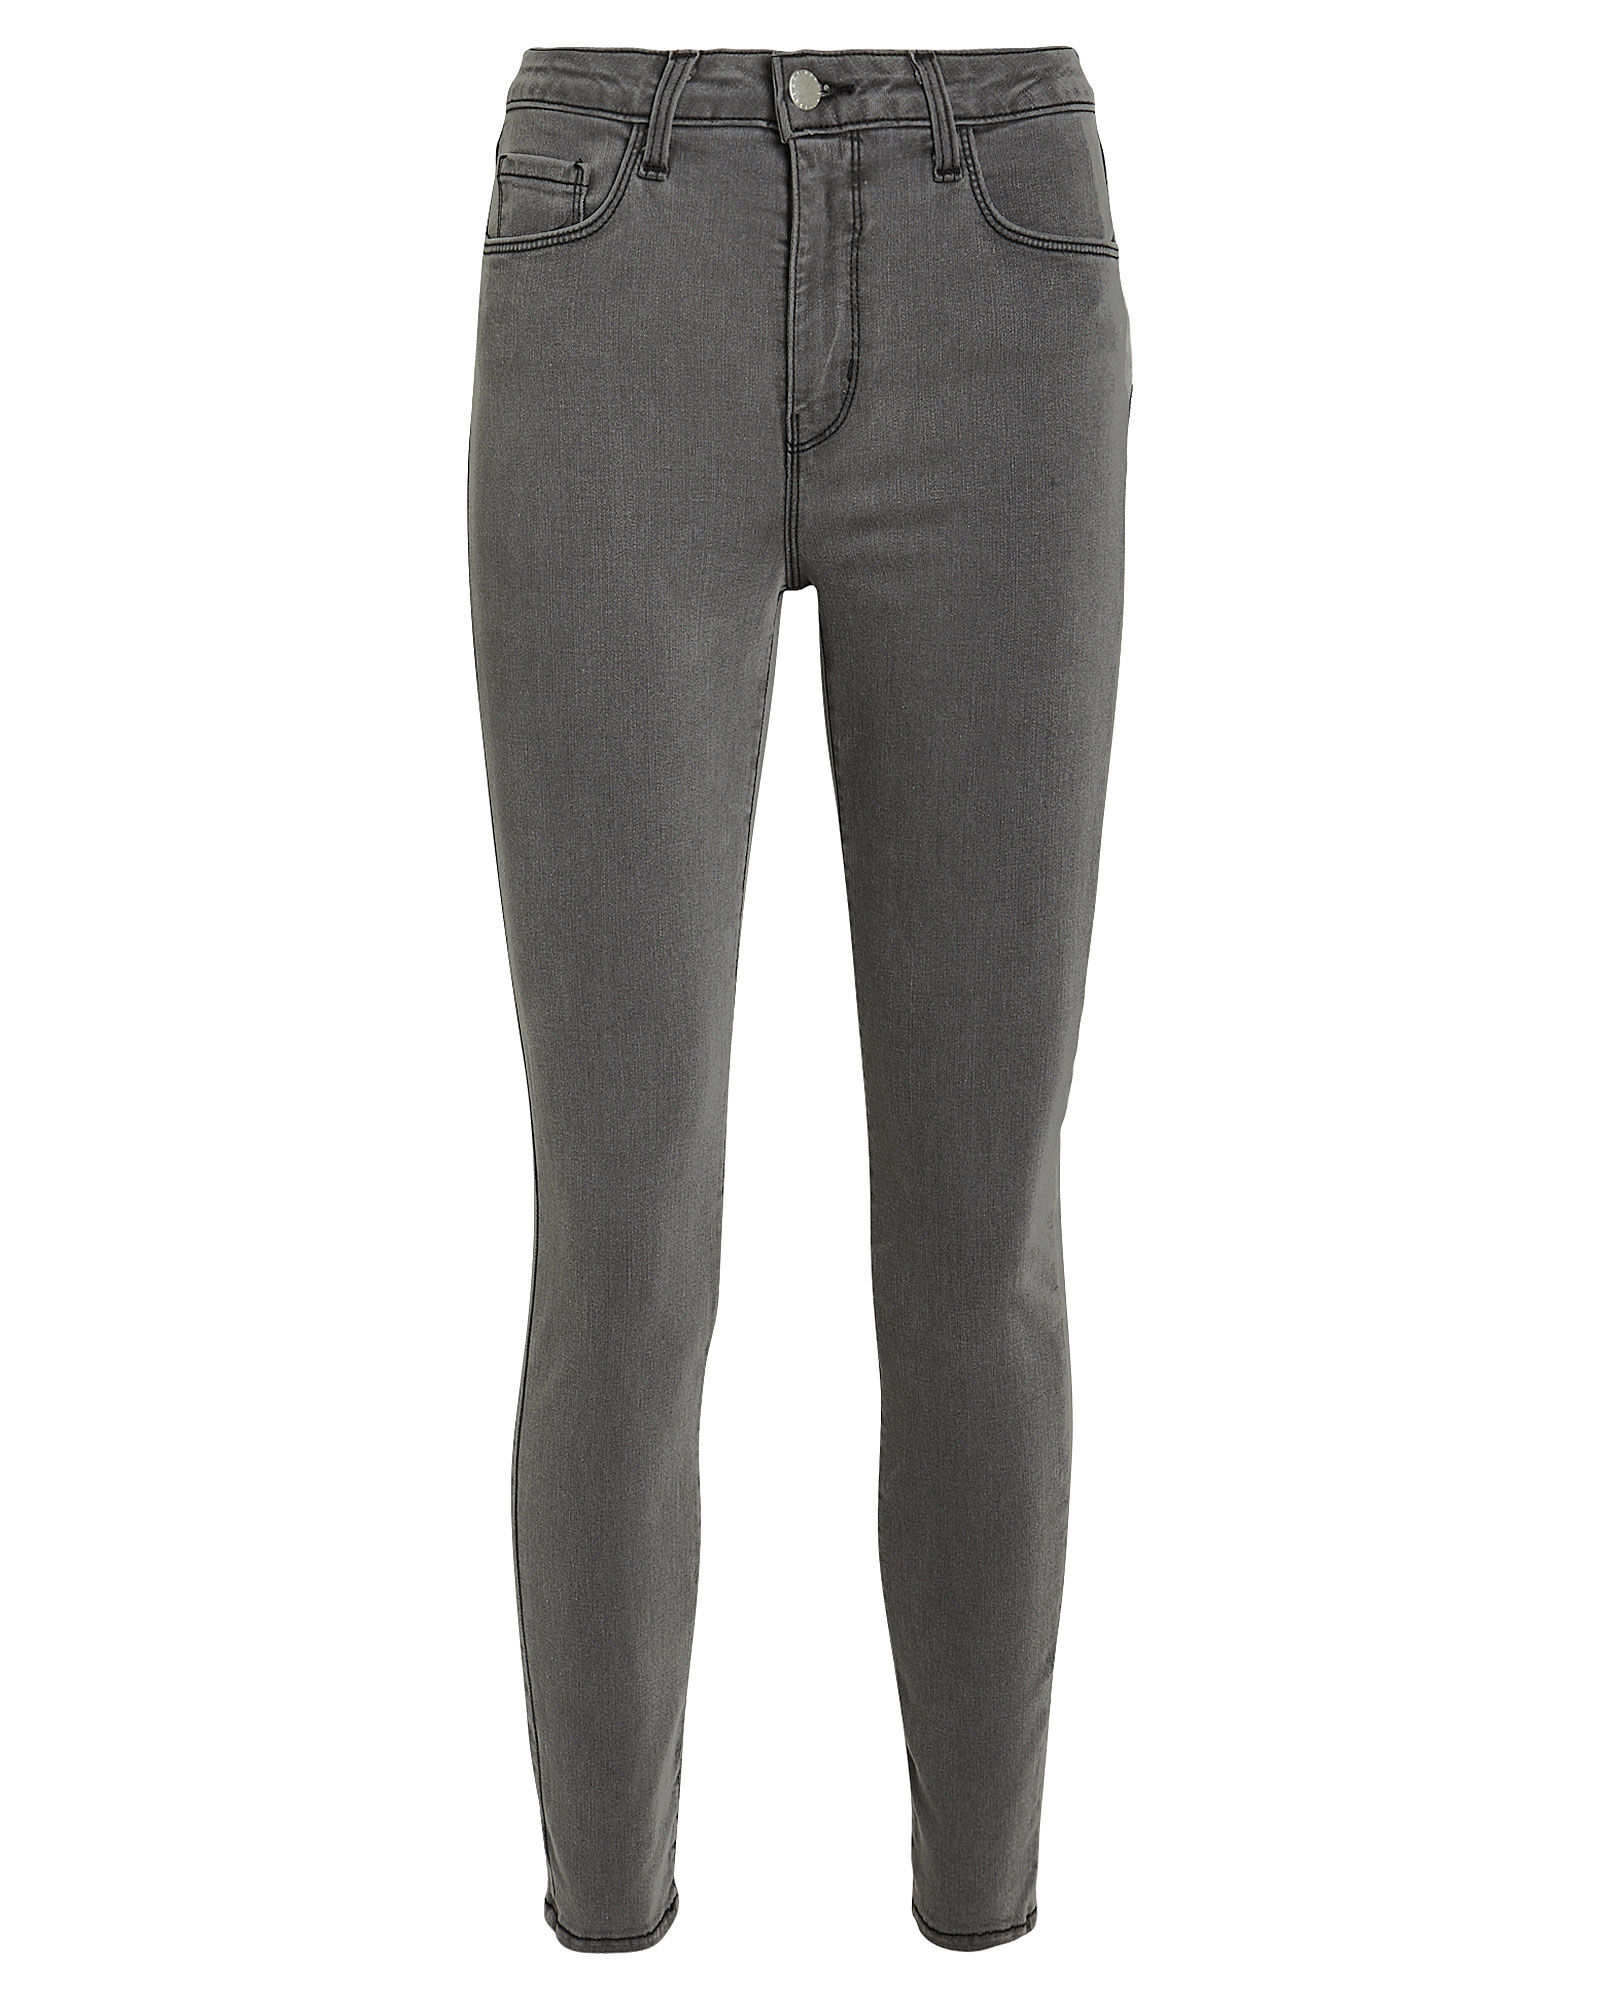 Margot High-Rise Skinny Jeans, CAST IRON, hi-res